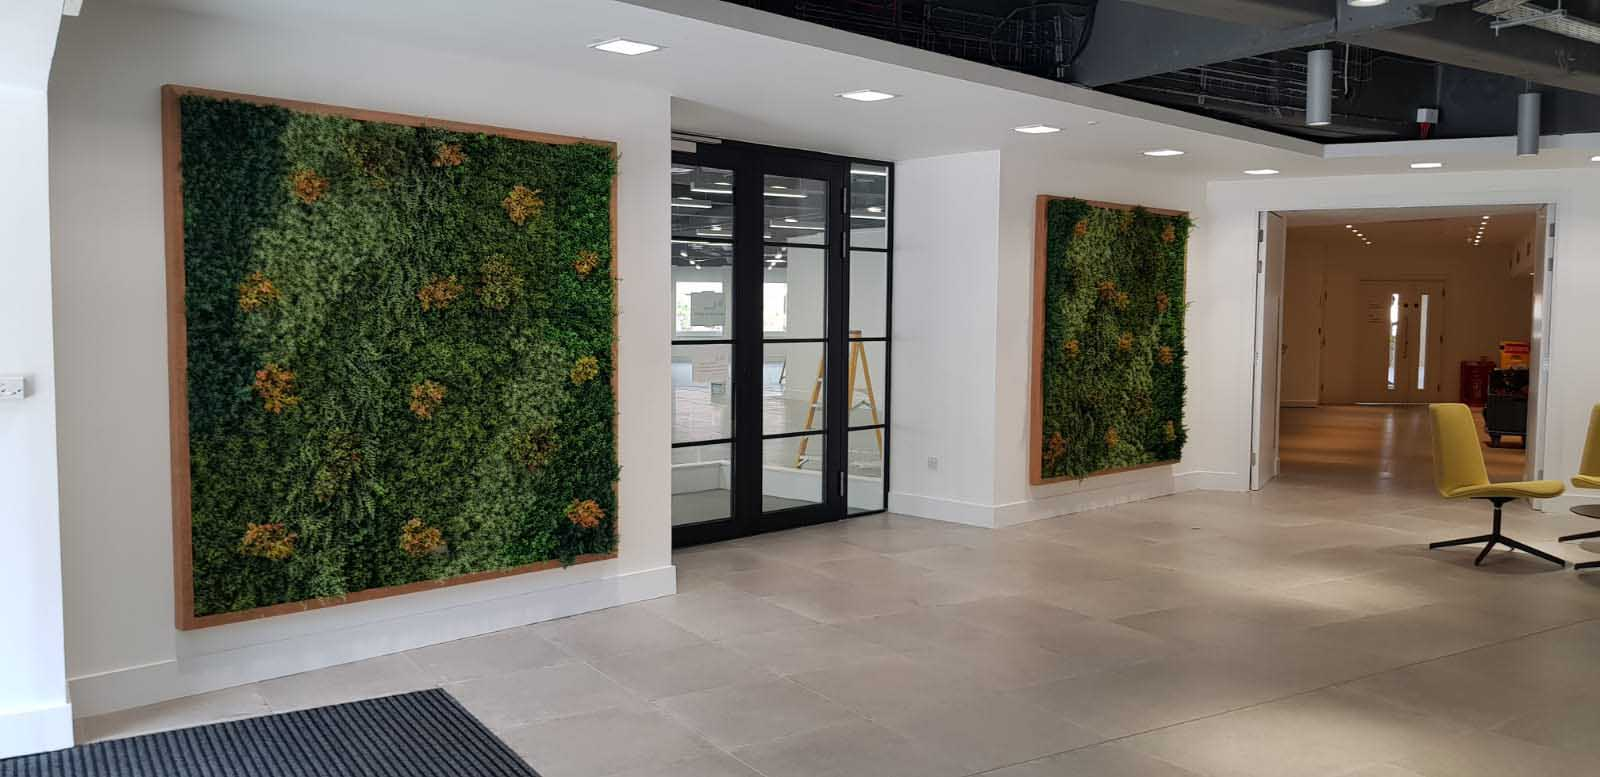 Bespoke artificial green wall foliage panels full of tones and texture in wooden frames hung in office entrance area